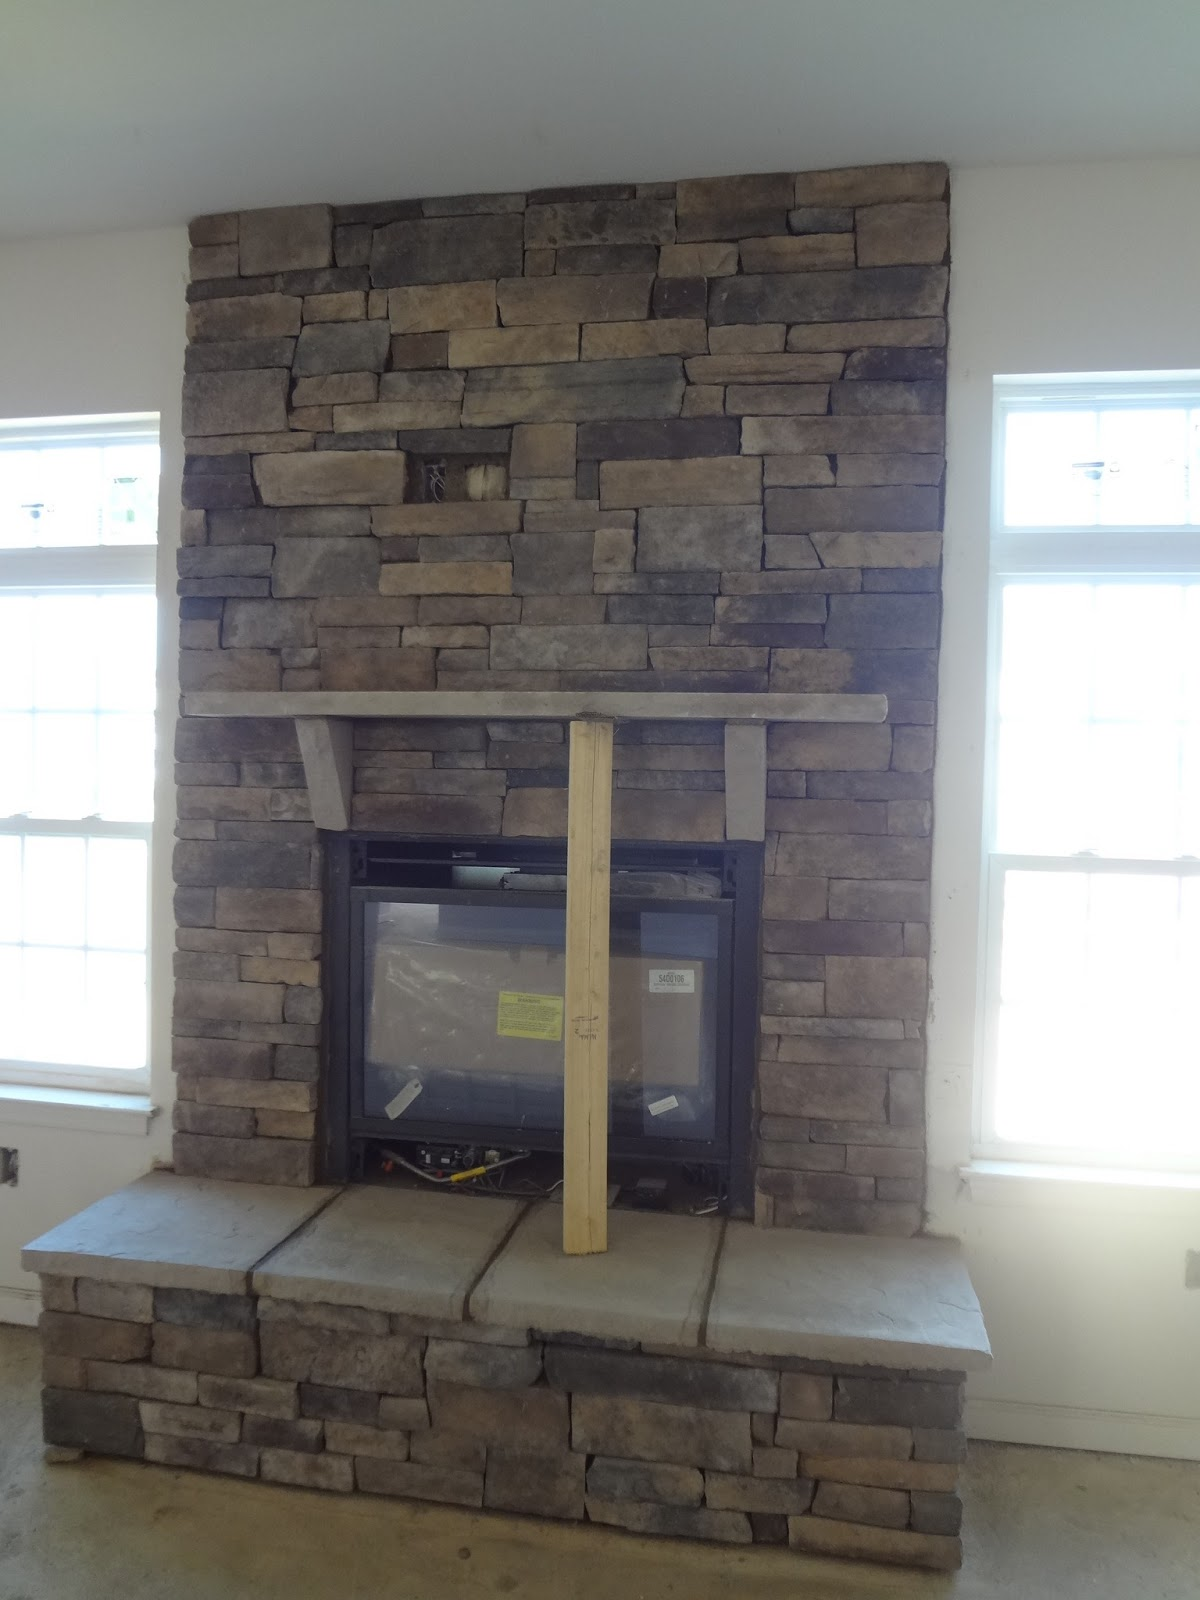 avalon endeavor question for those with the stone fireplace